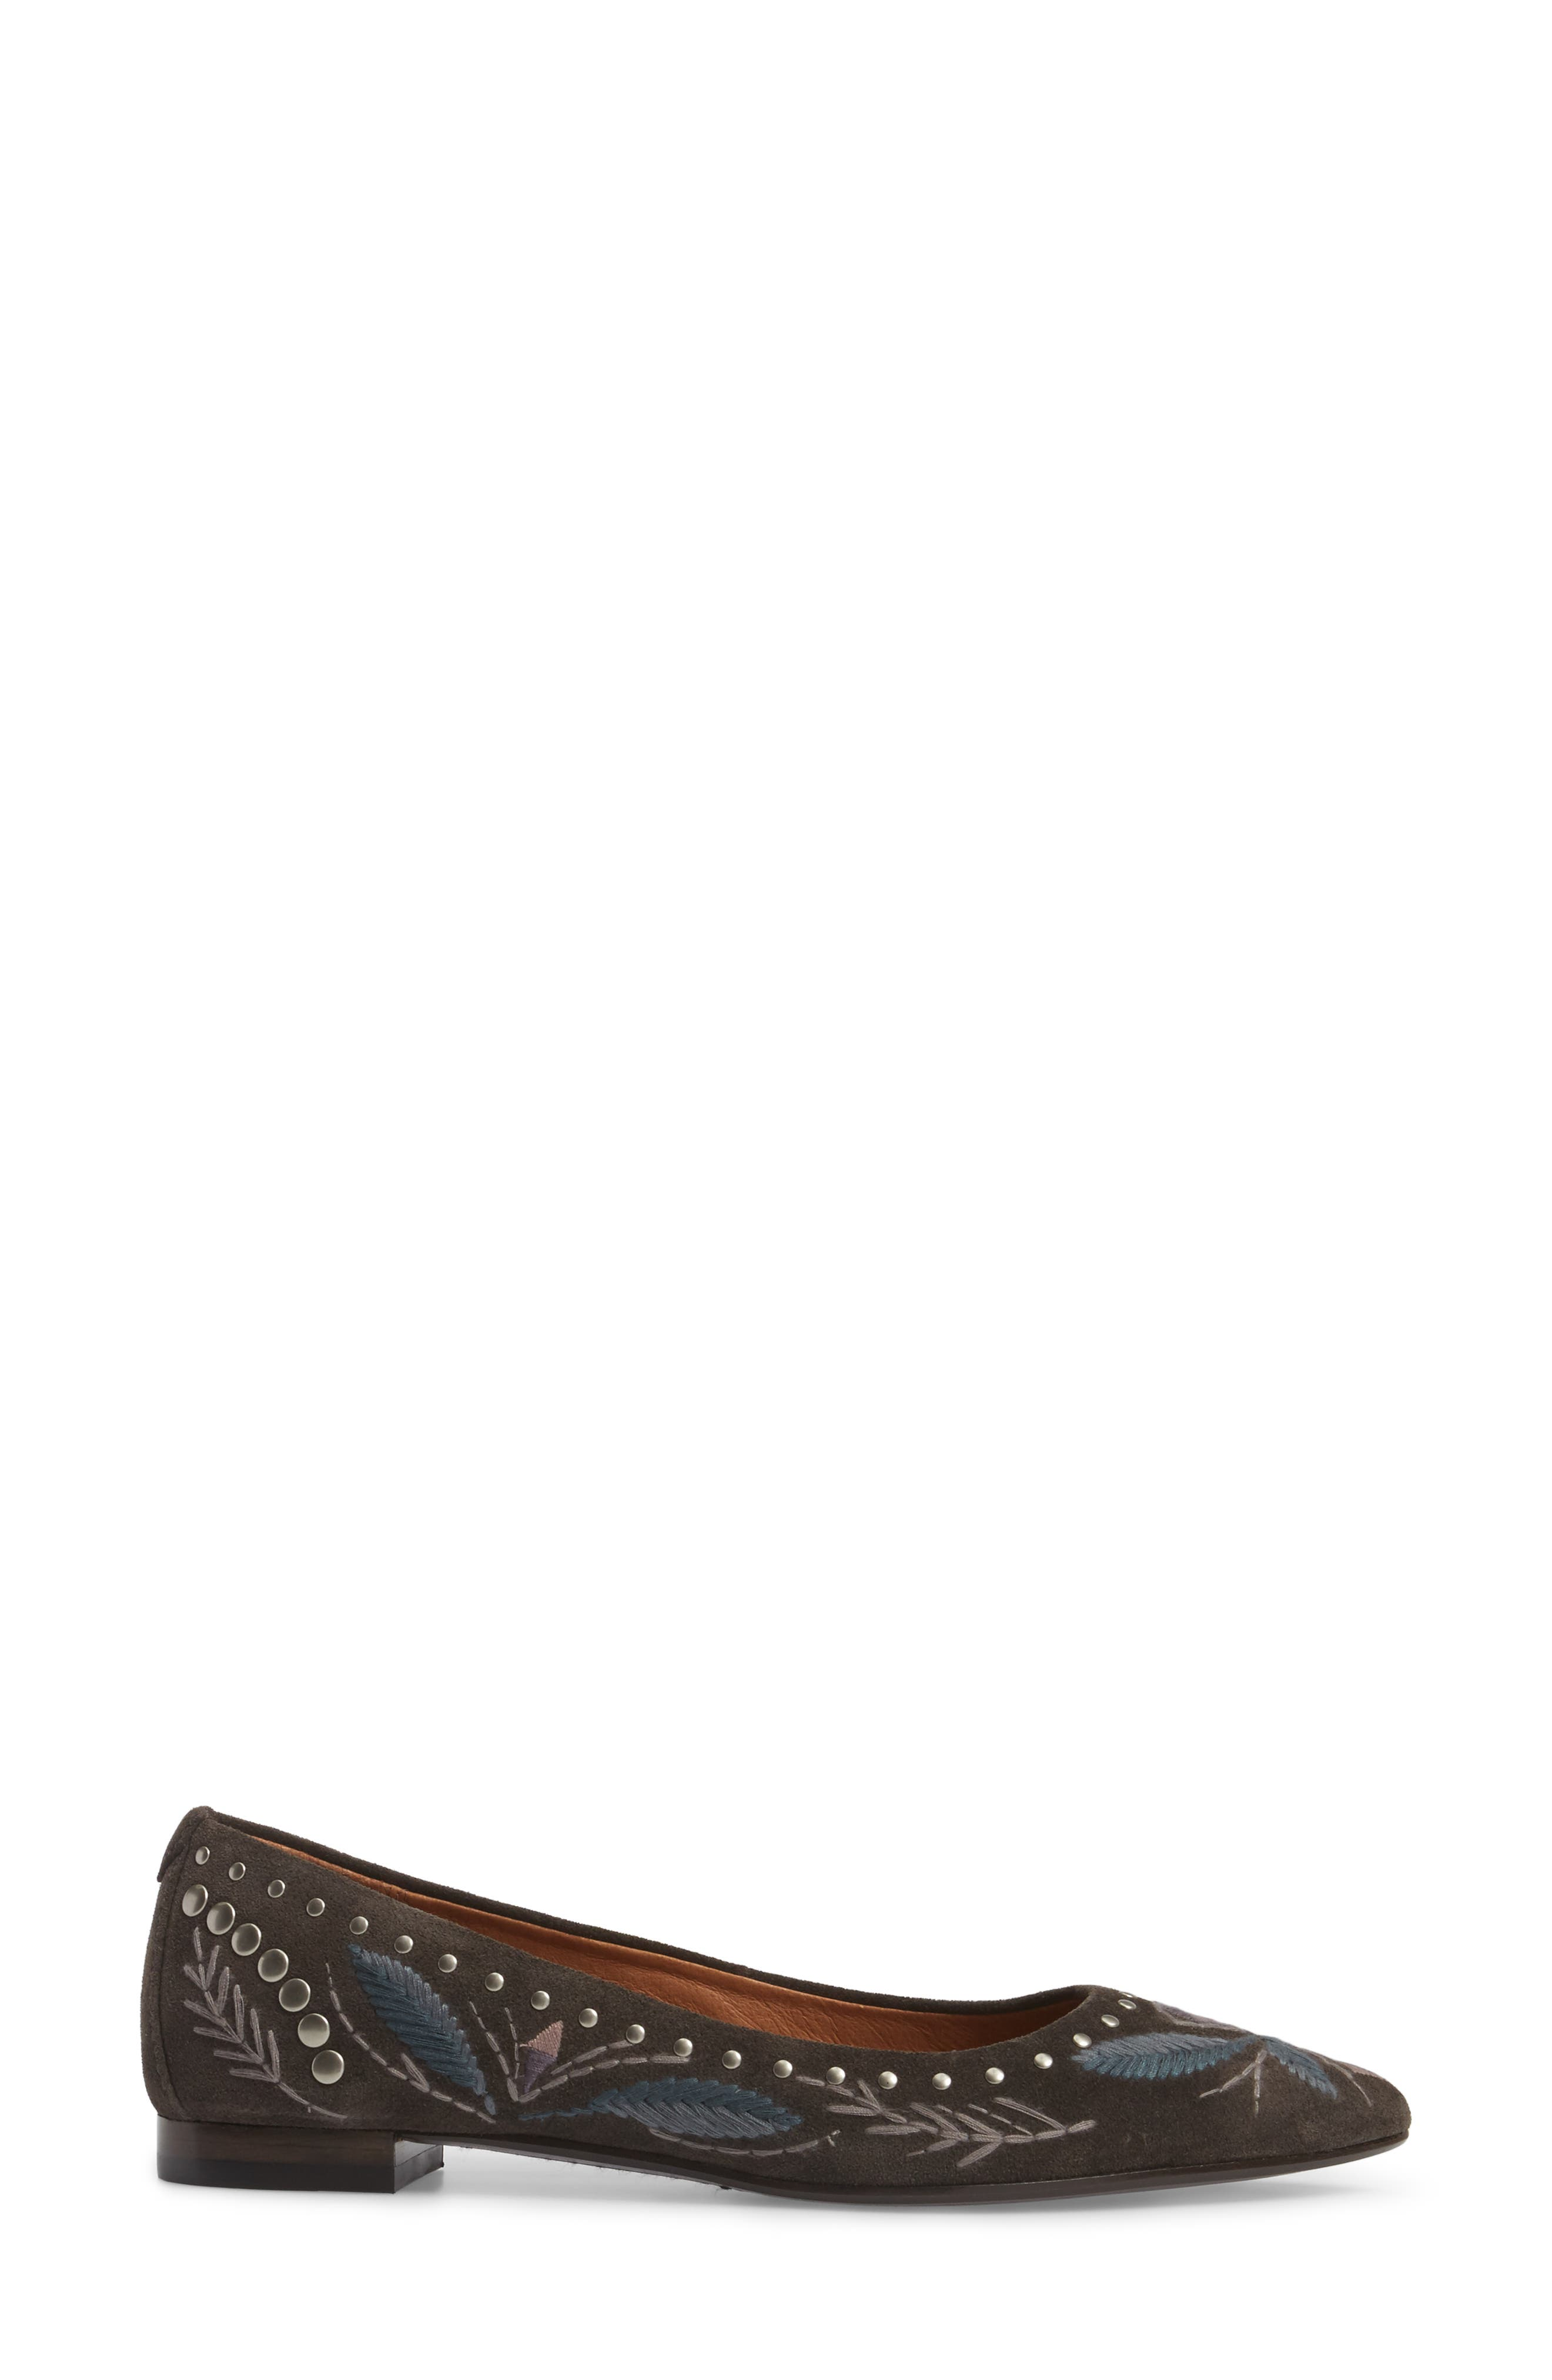 Sienna Embroidered Ballet Flat,                             Alternate thumbnail 3, color,                             030